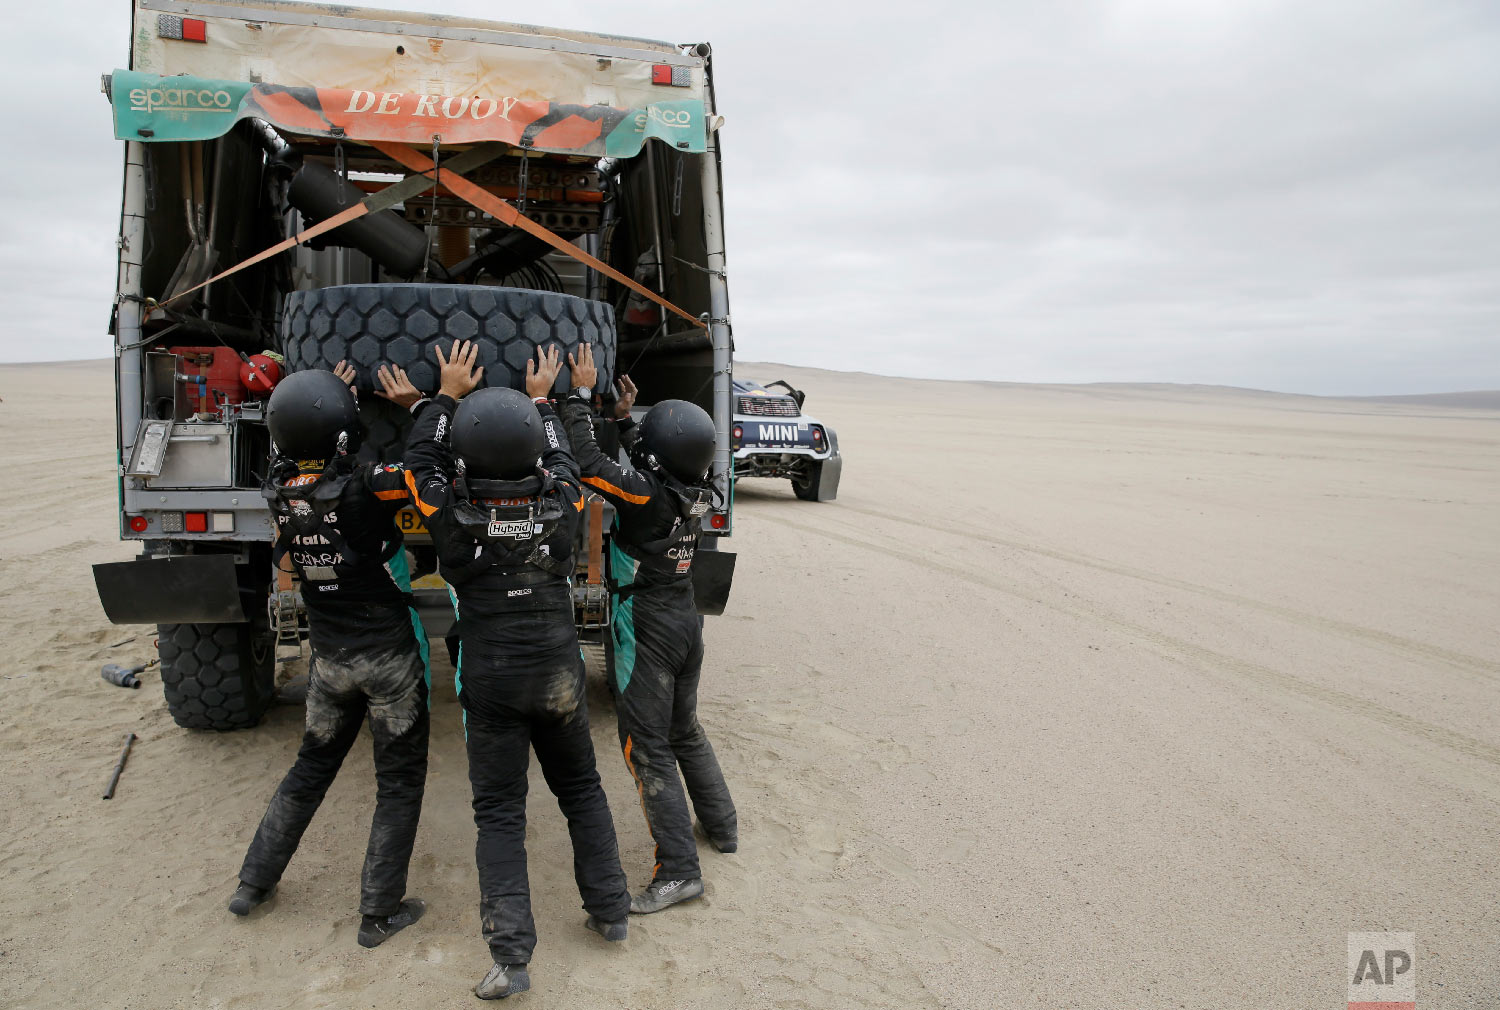 Driver Federico Villagra and co-drivers Arturo Yacopini and Ricardo Torlaschi, all of Argentina, lift a tyre onto their Iveco truck during the stage eight of the Dakar Rally between San Juan de Marcona and Pisco, Peru, Jan. 15, 2019. (AP Photo/Ricardo Mazalan)